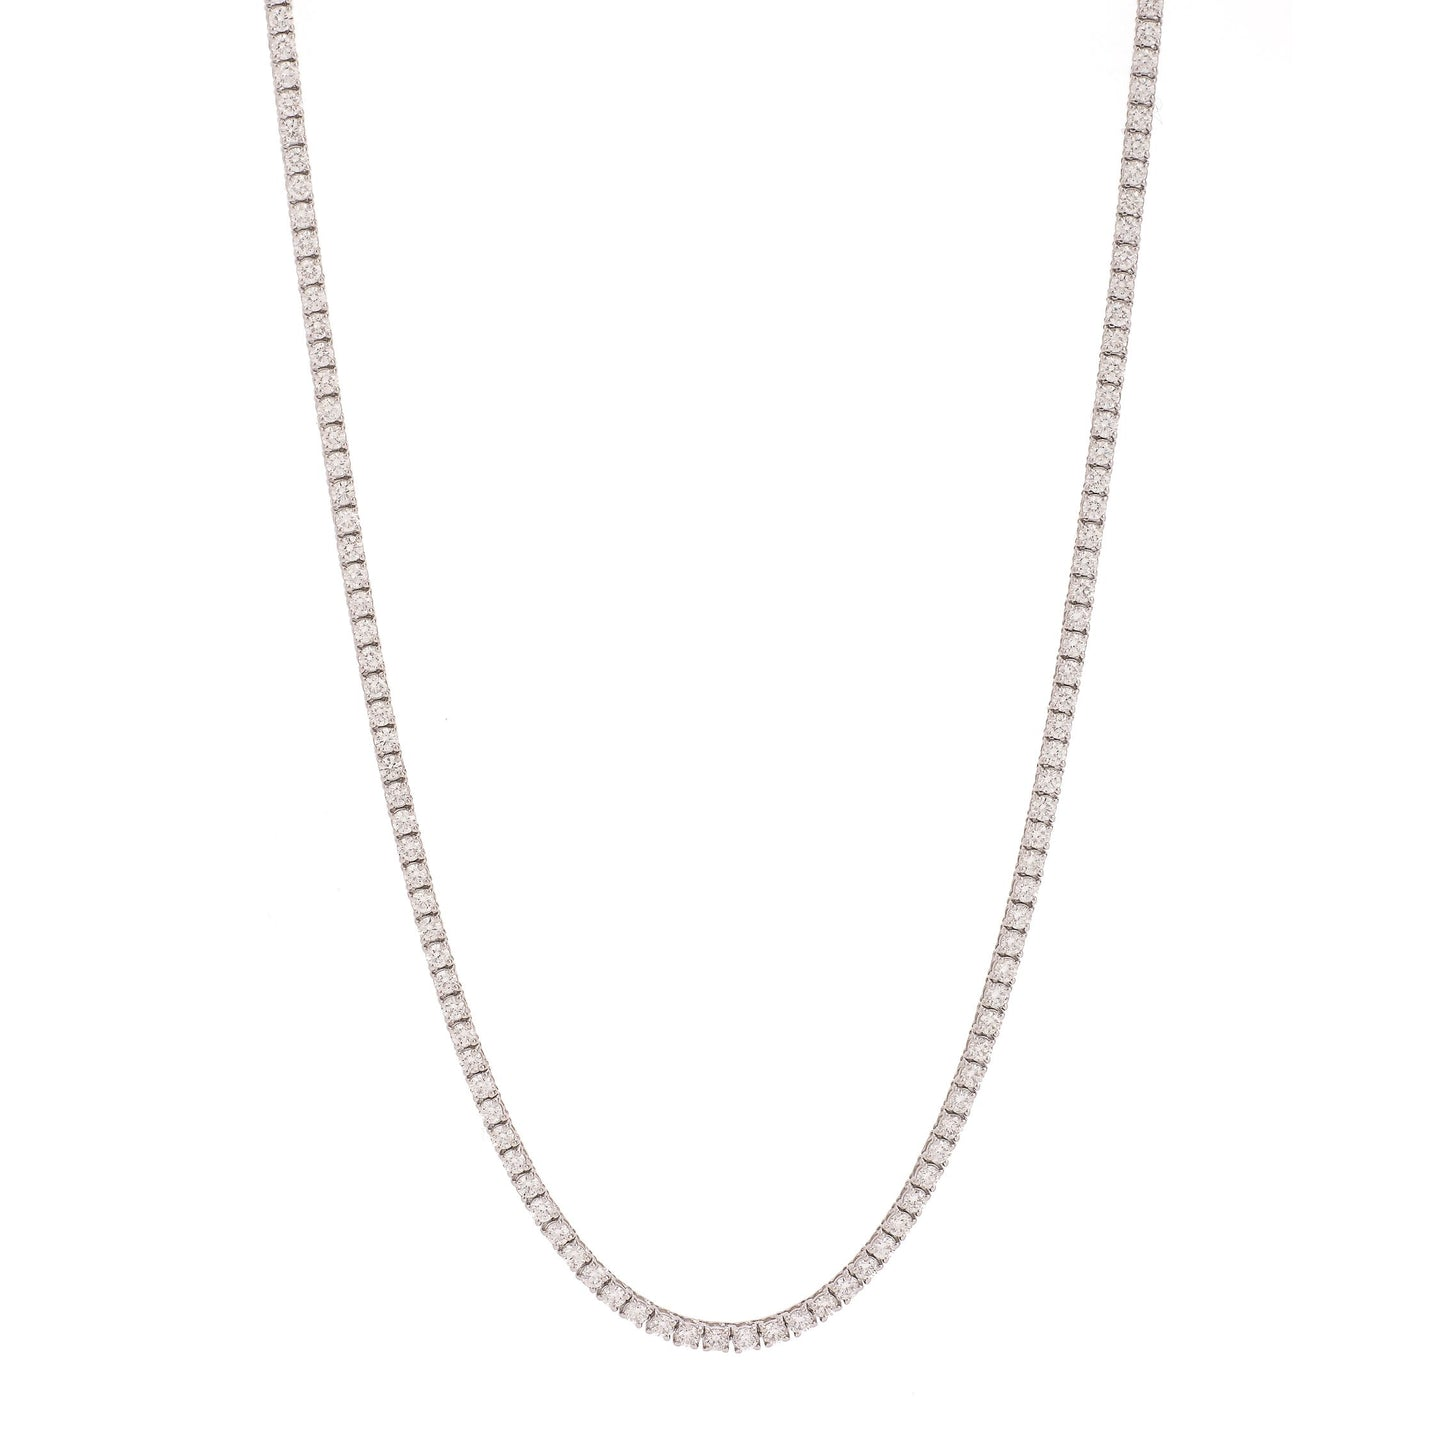 Essential Diamond Line Necklace (7.7 tcw) - Best & Co.